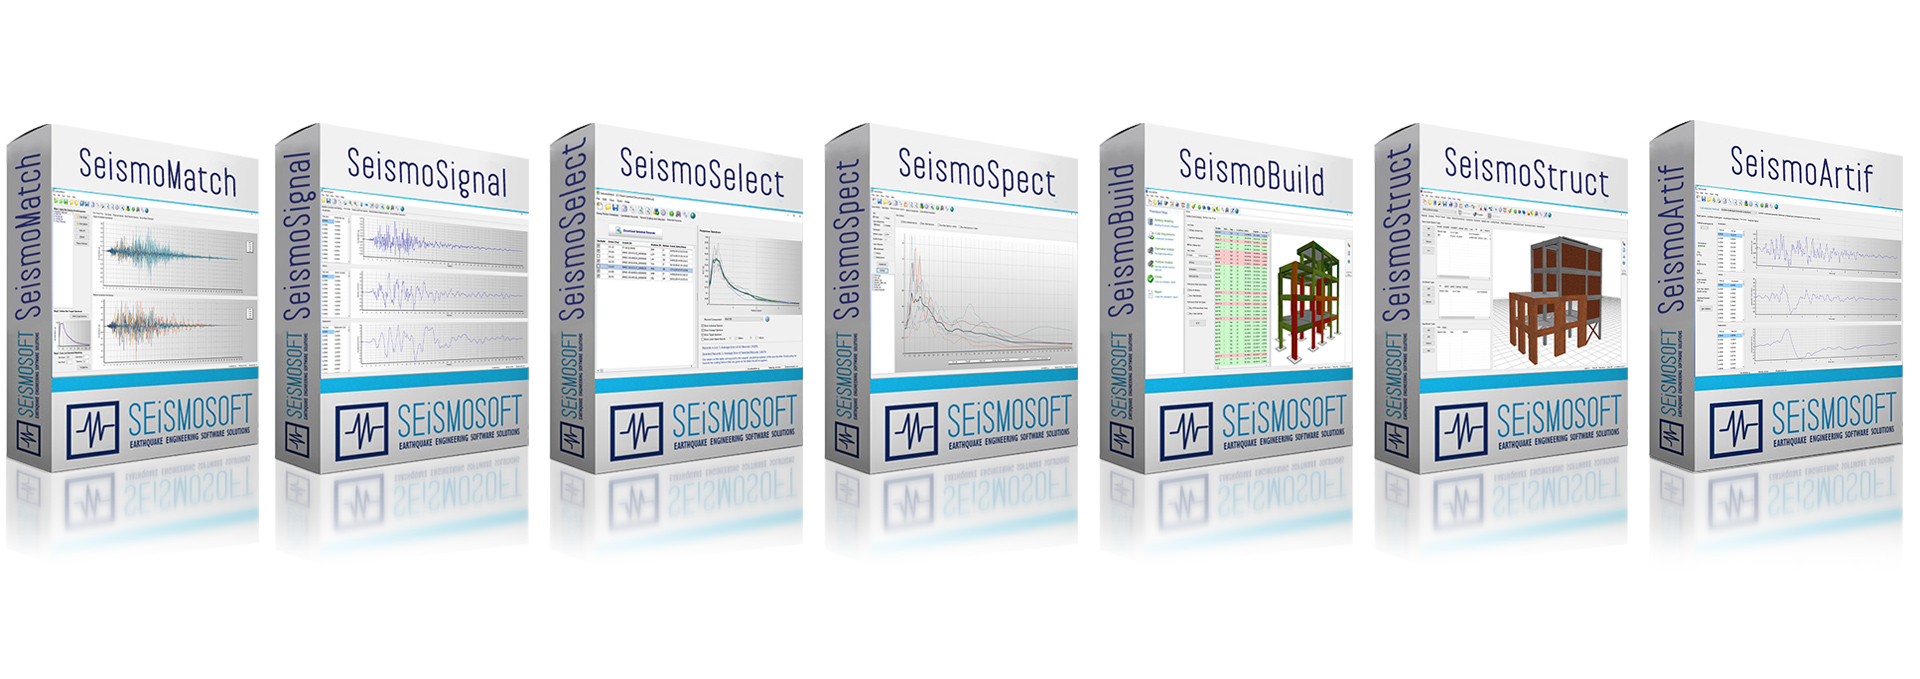 SeismoSoft Earthquake Engineering Software Solutions